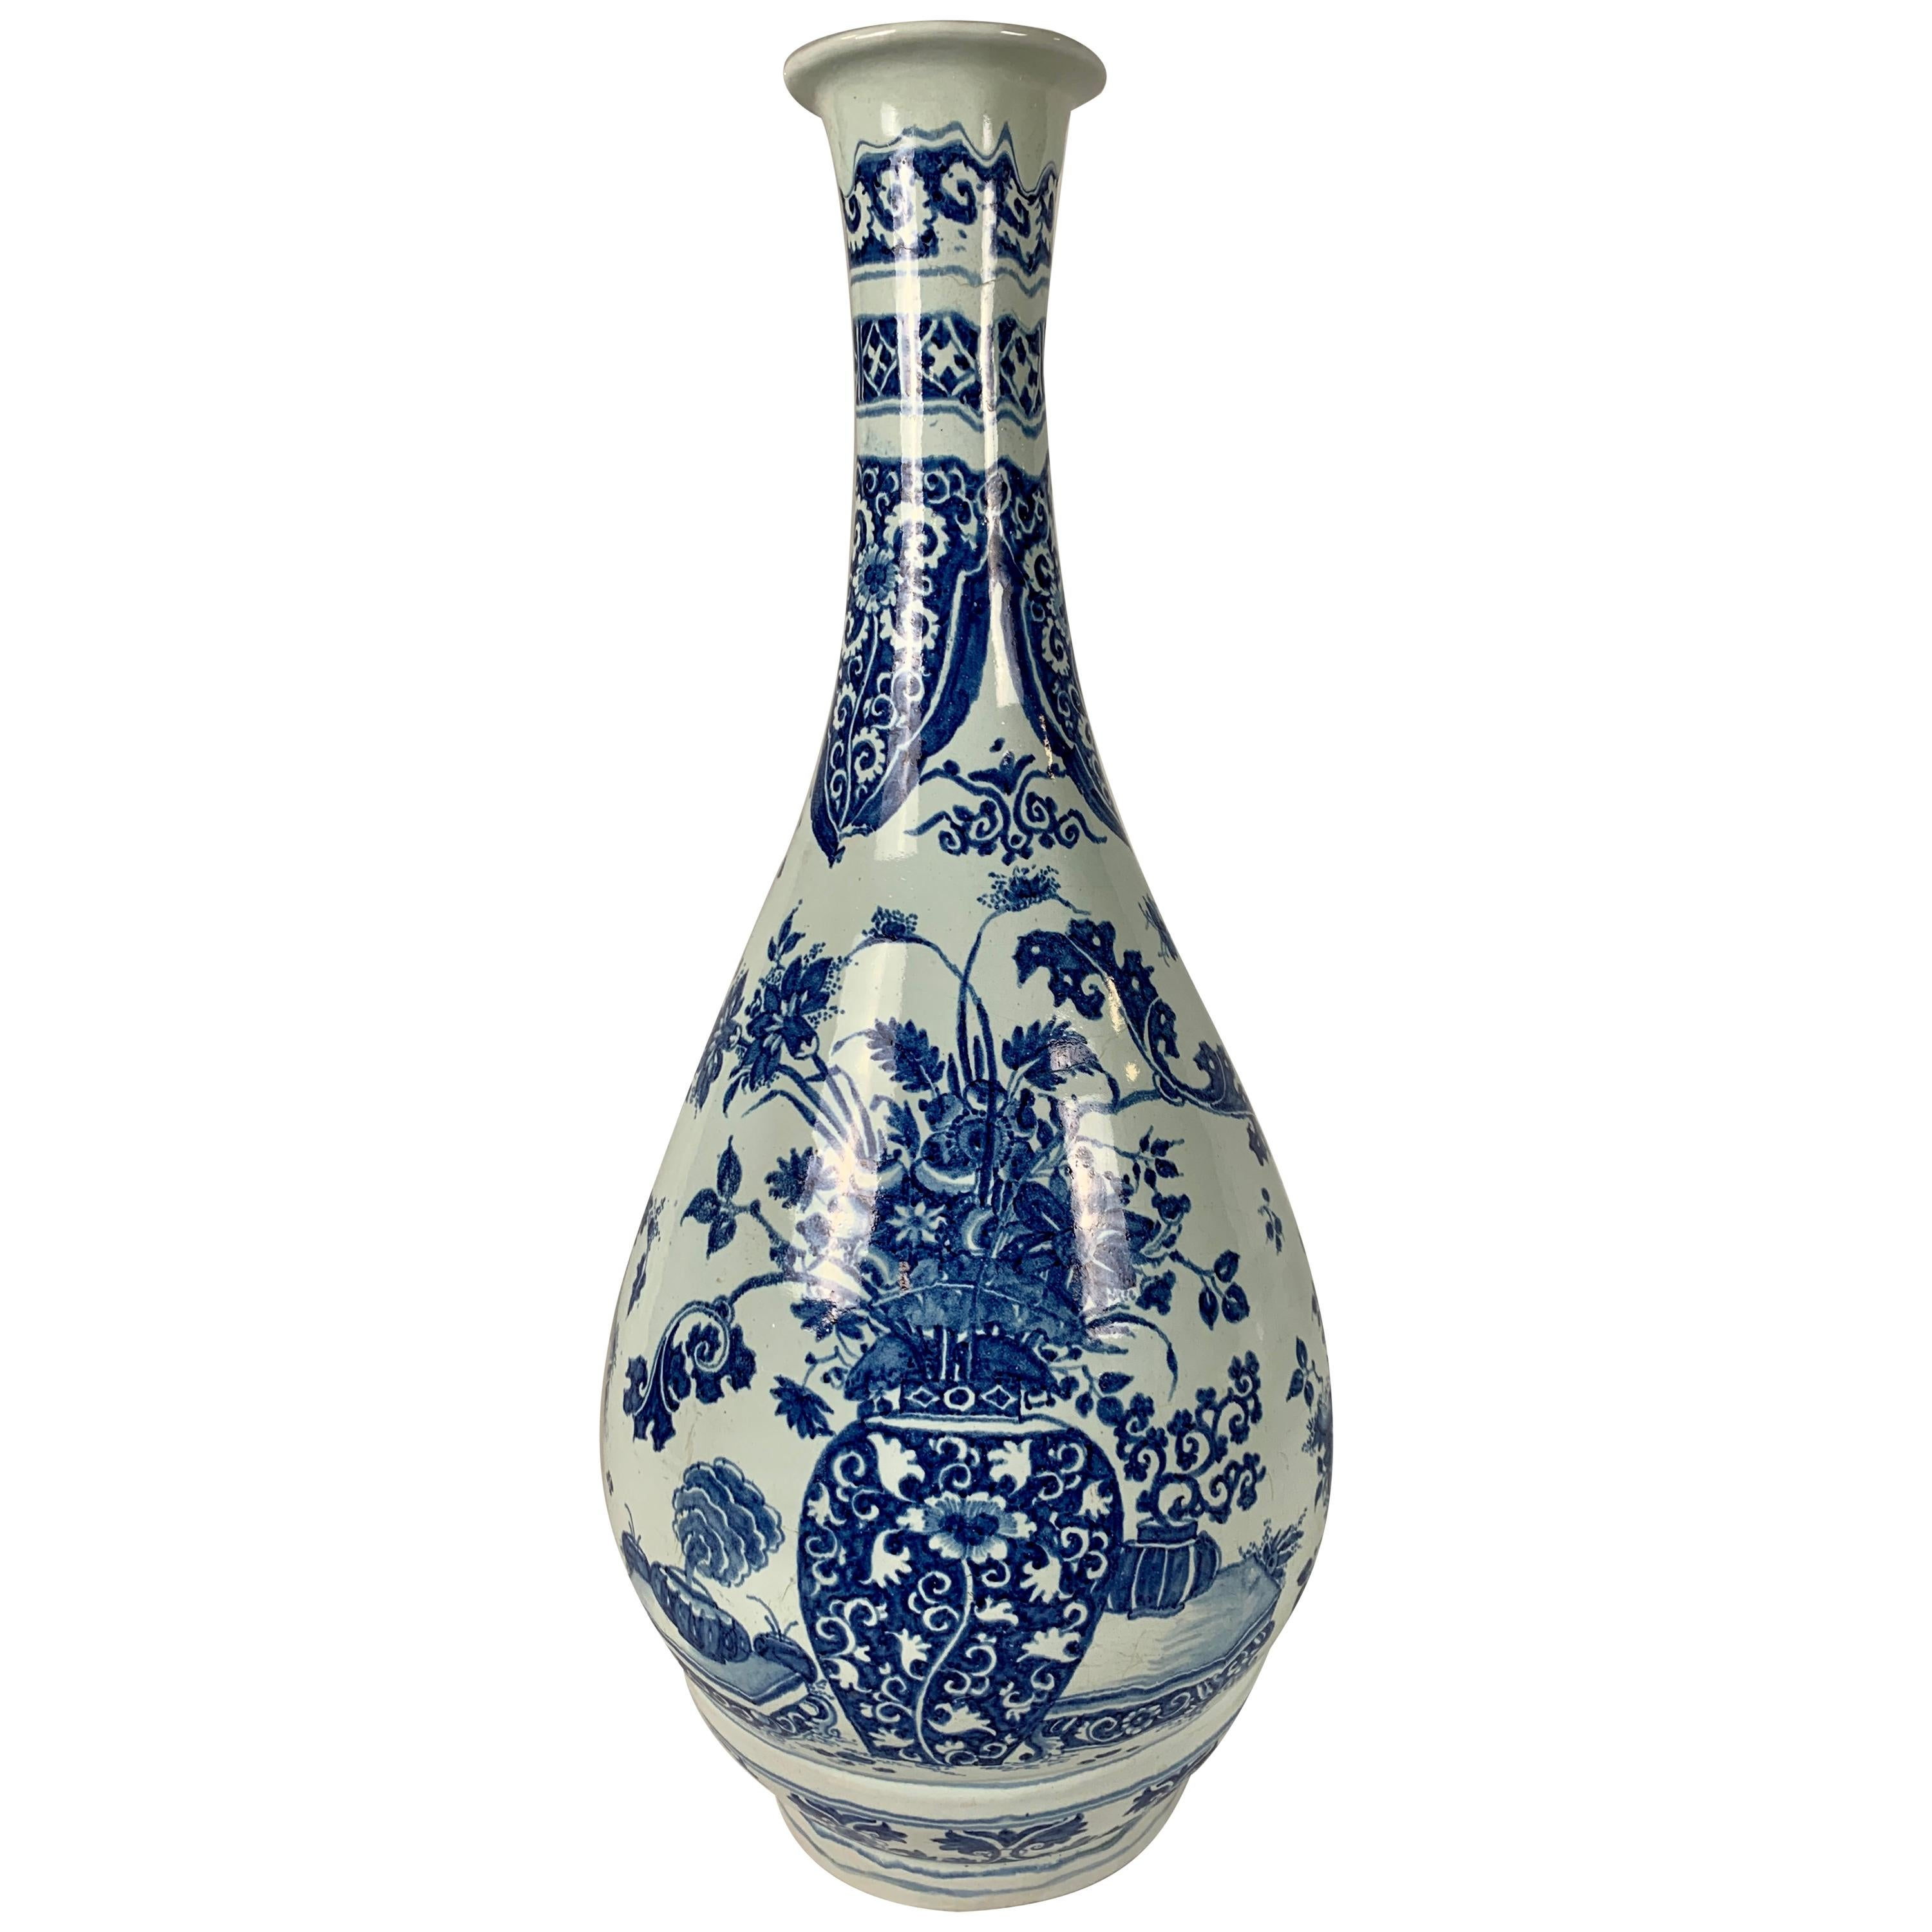 Blue and White Delft Large Pear Shaped Vase